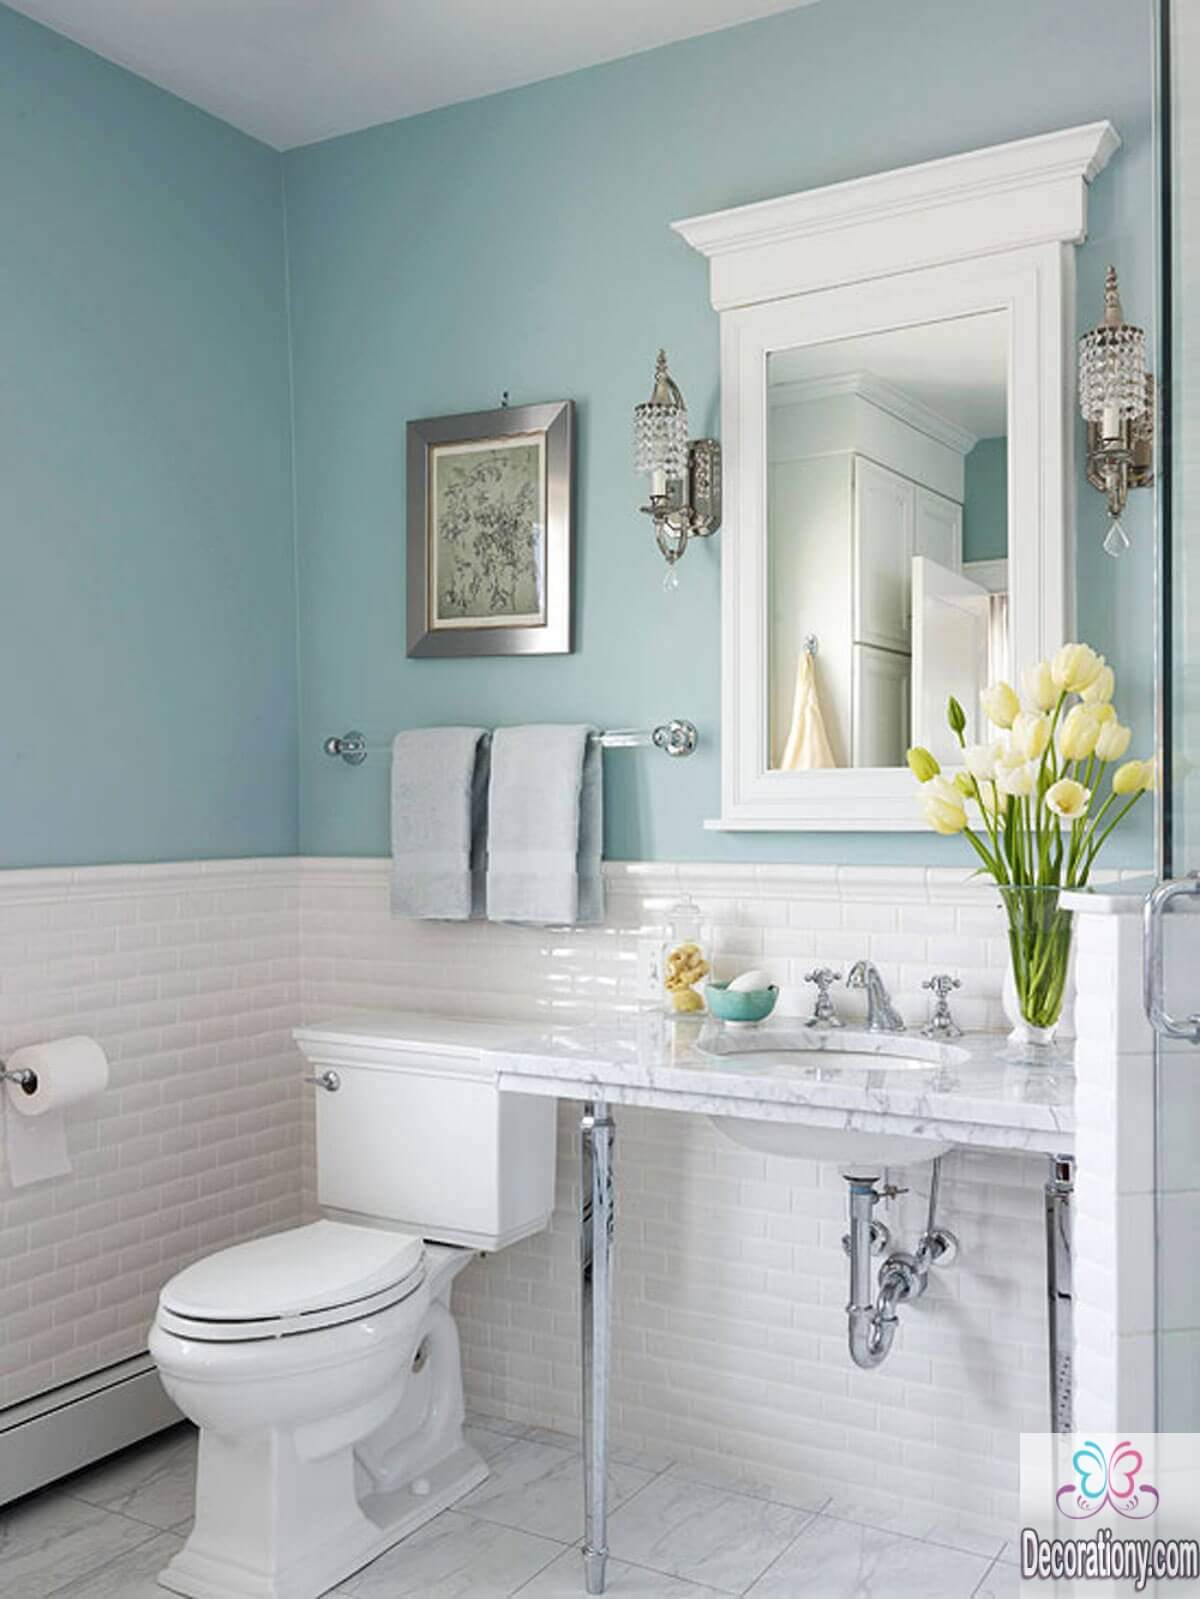 10 affordable colors for small bathrooms decoration y for Design my bathroom remodel